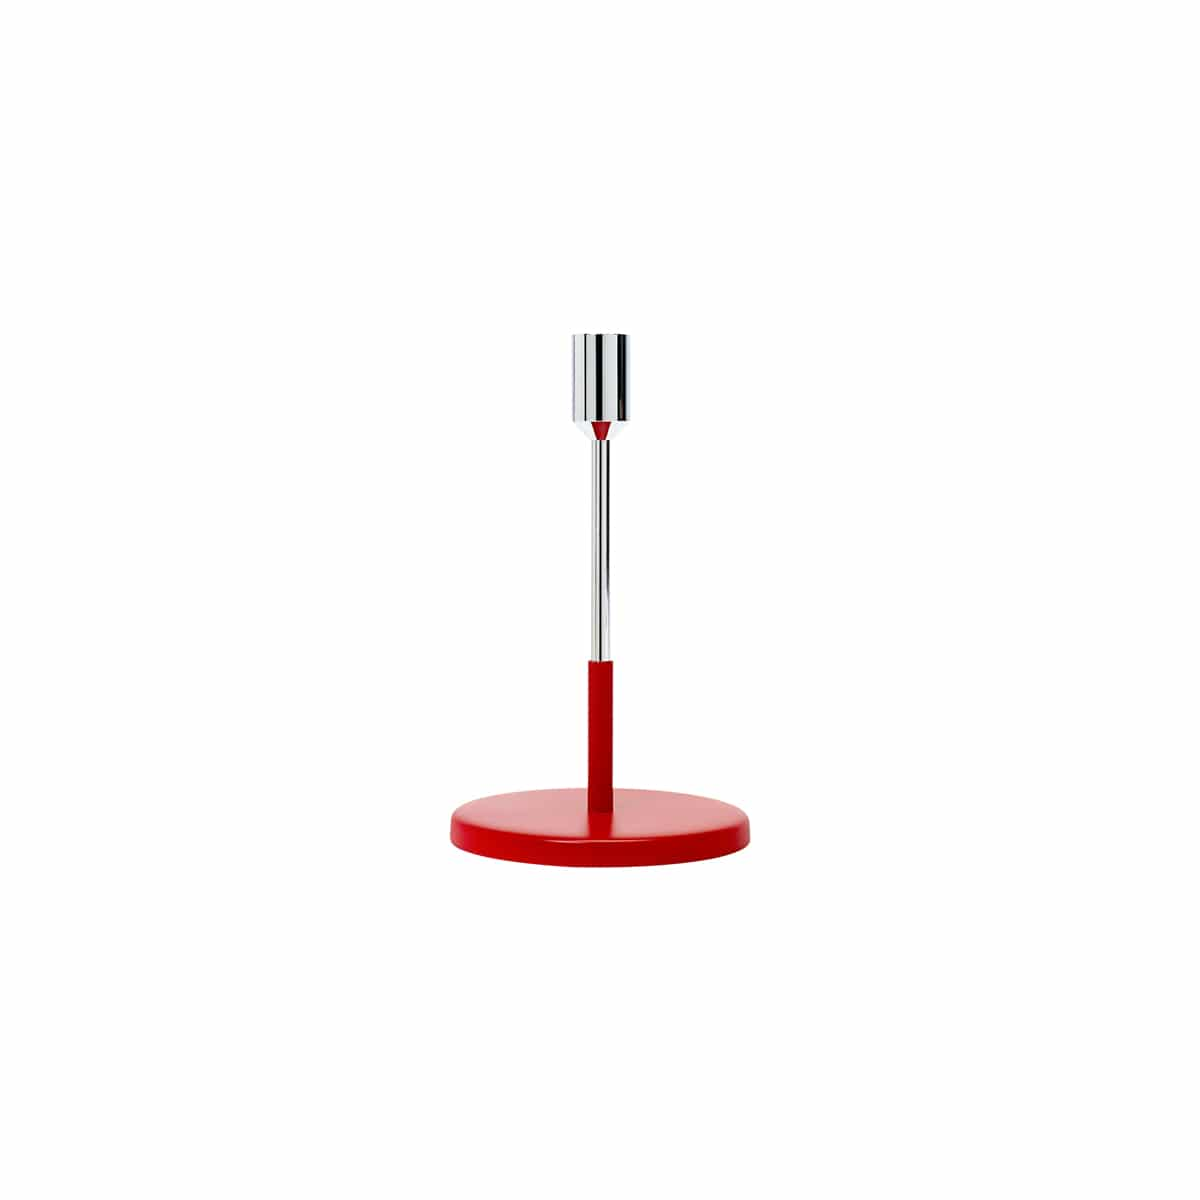 bougeoir candle holder argent/rouge jansen+co zeeloft